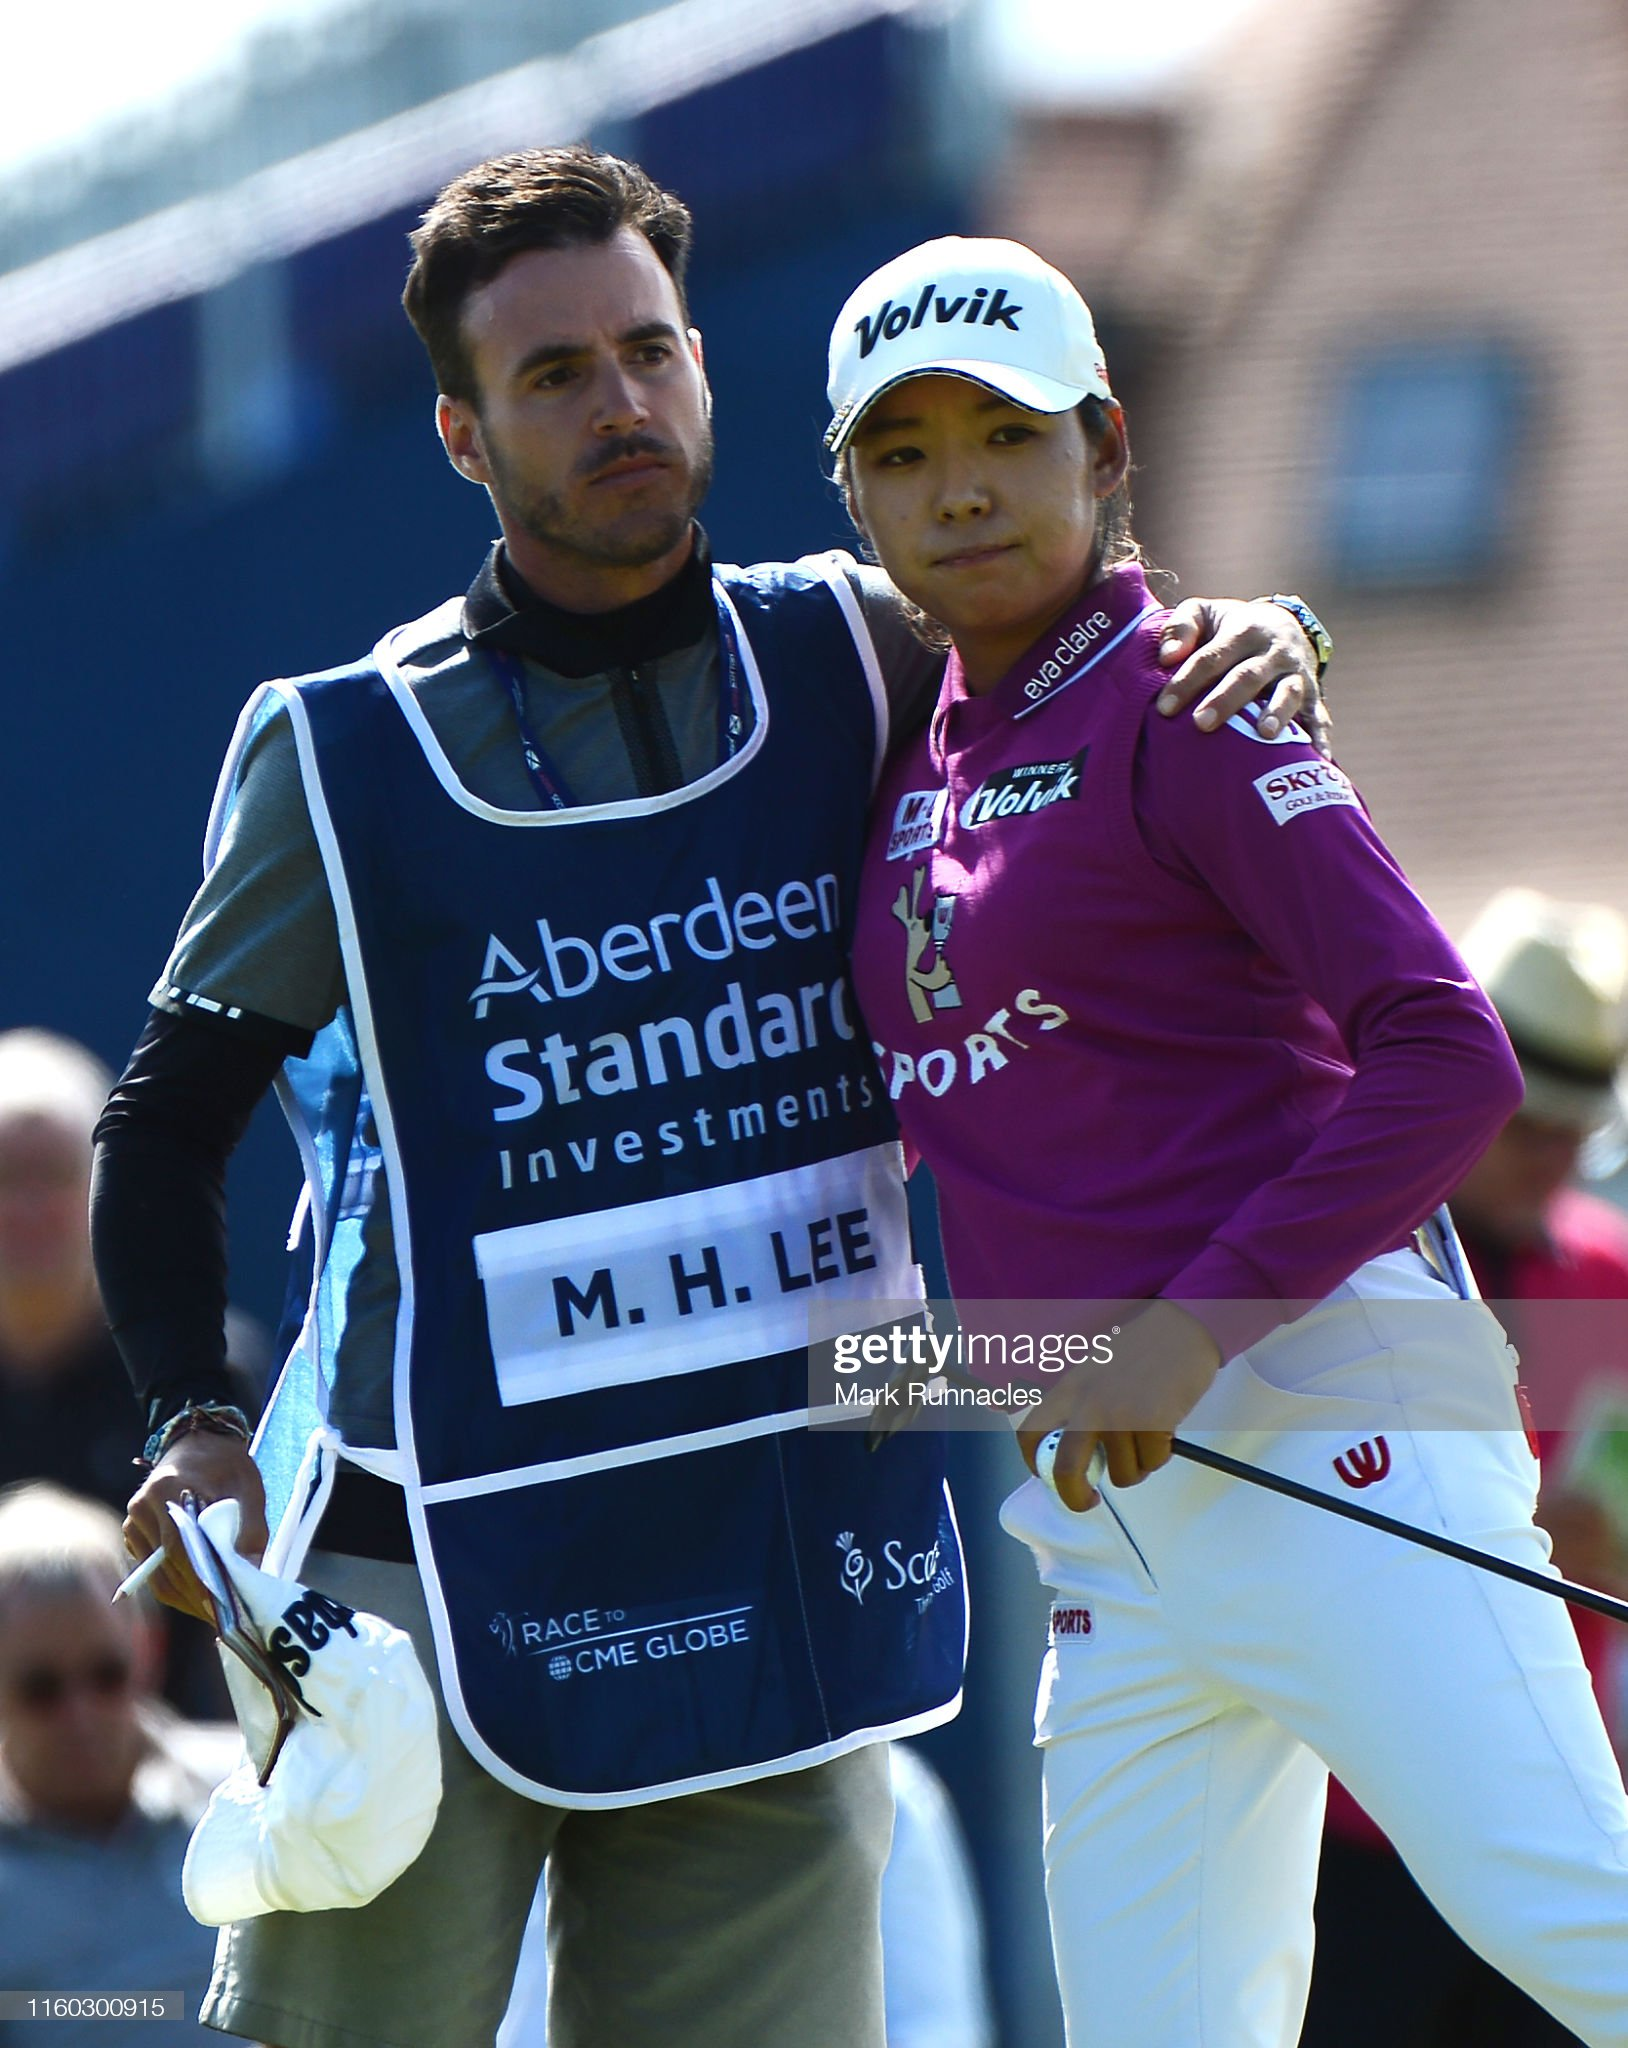 https://media.gettyimages.com/photos/mi-hyang-lee-of-korea-is-congratulated-by-her-caddie-jesus-mozo-after-picture-id1160300915?s=2048x2048